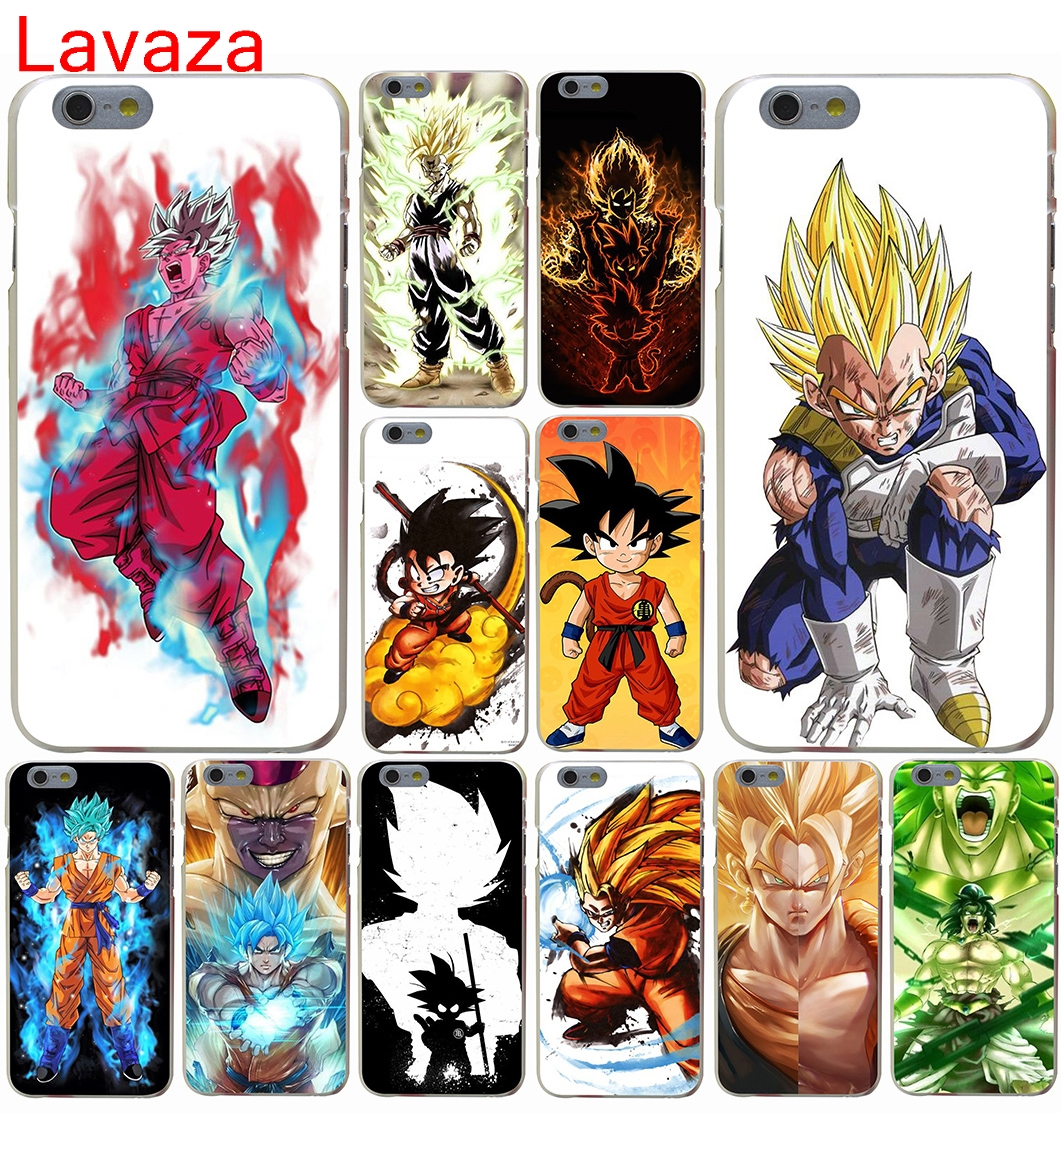 Lavaza dragon ball Goku vs Golden Hard Case for iphone 4 4s 5c 5s 5 SE 6 6s 6/7/8 plus X for iphone 7 case